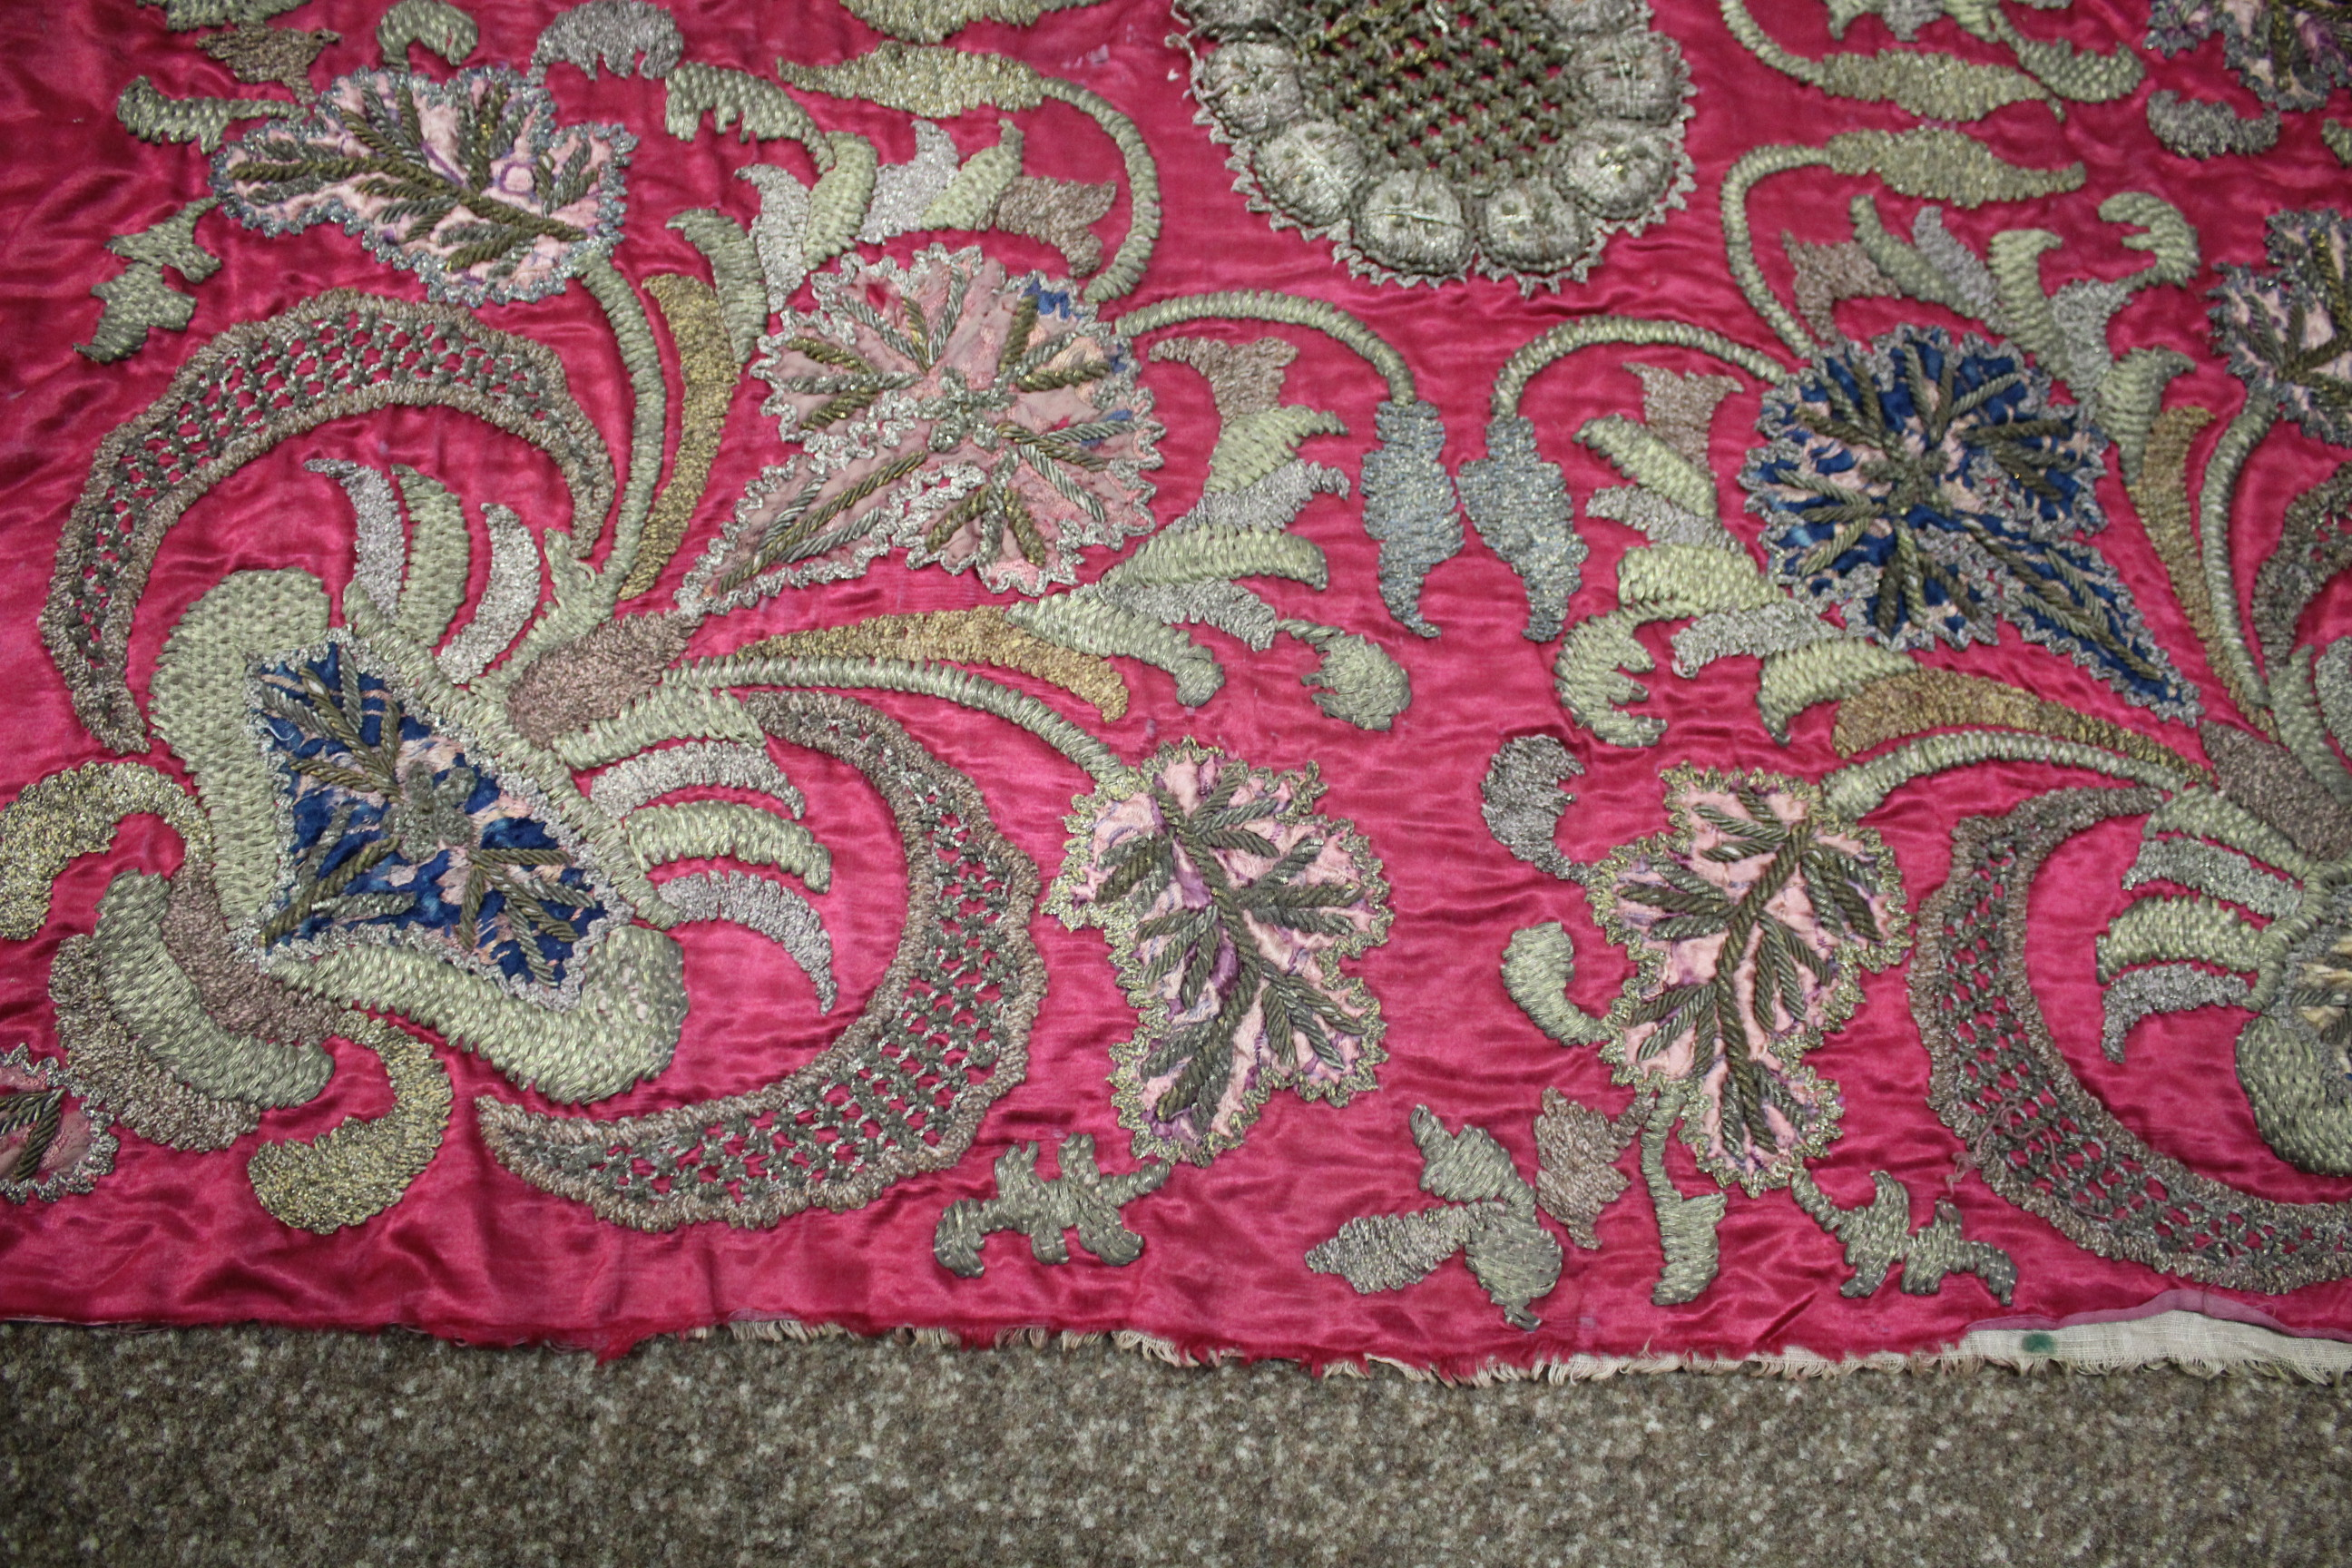 Lot 1885 - SILK TAPESTRY PANEL probably 18thc, a silk and metal thread panel working in various stitches on a